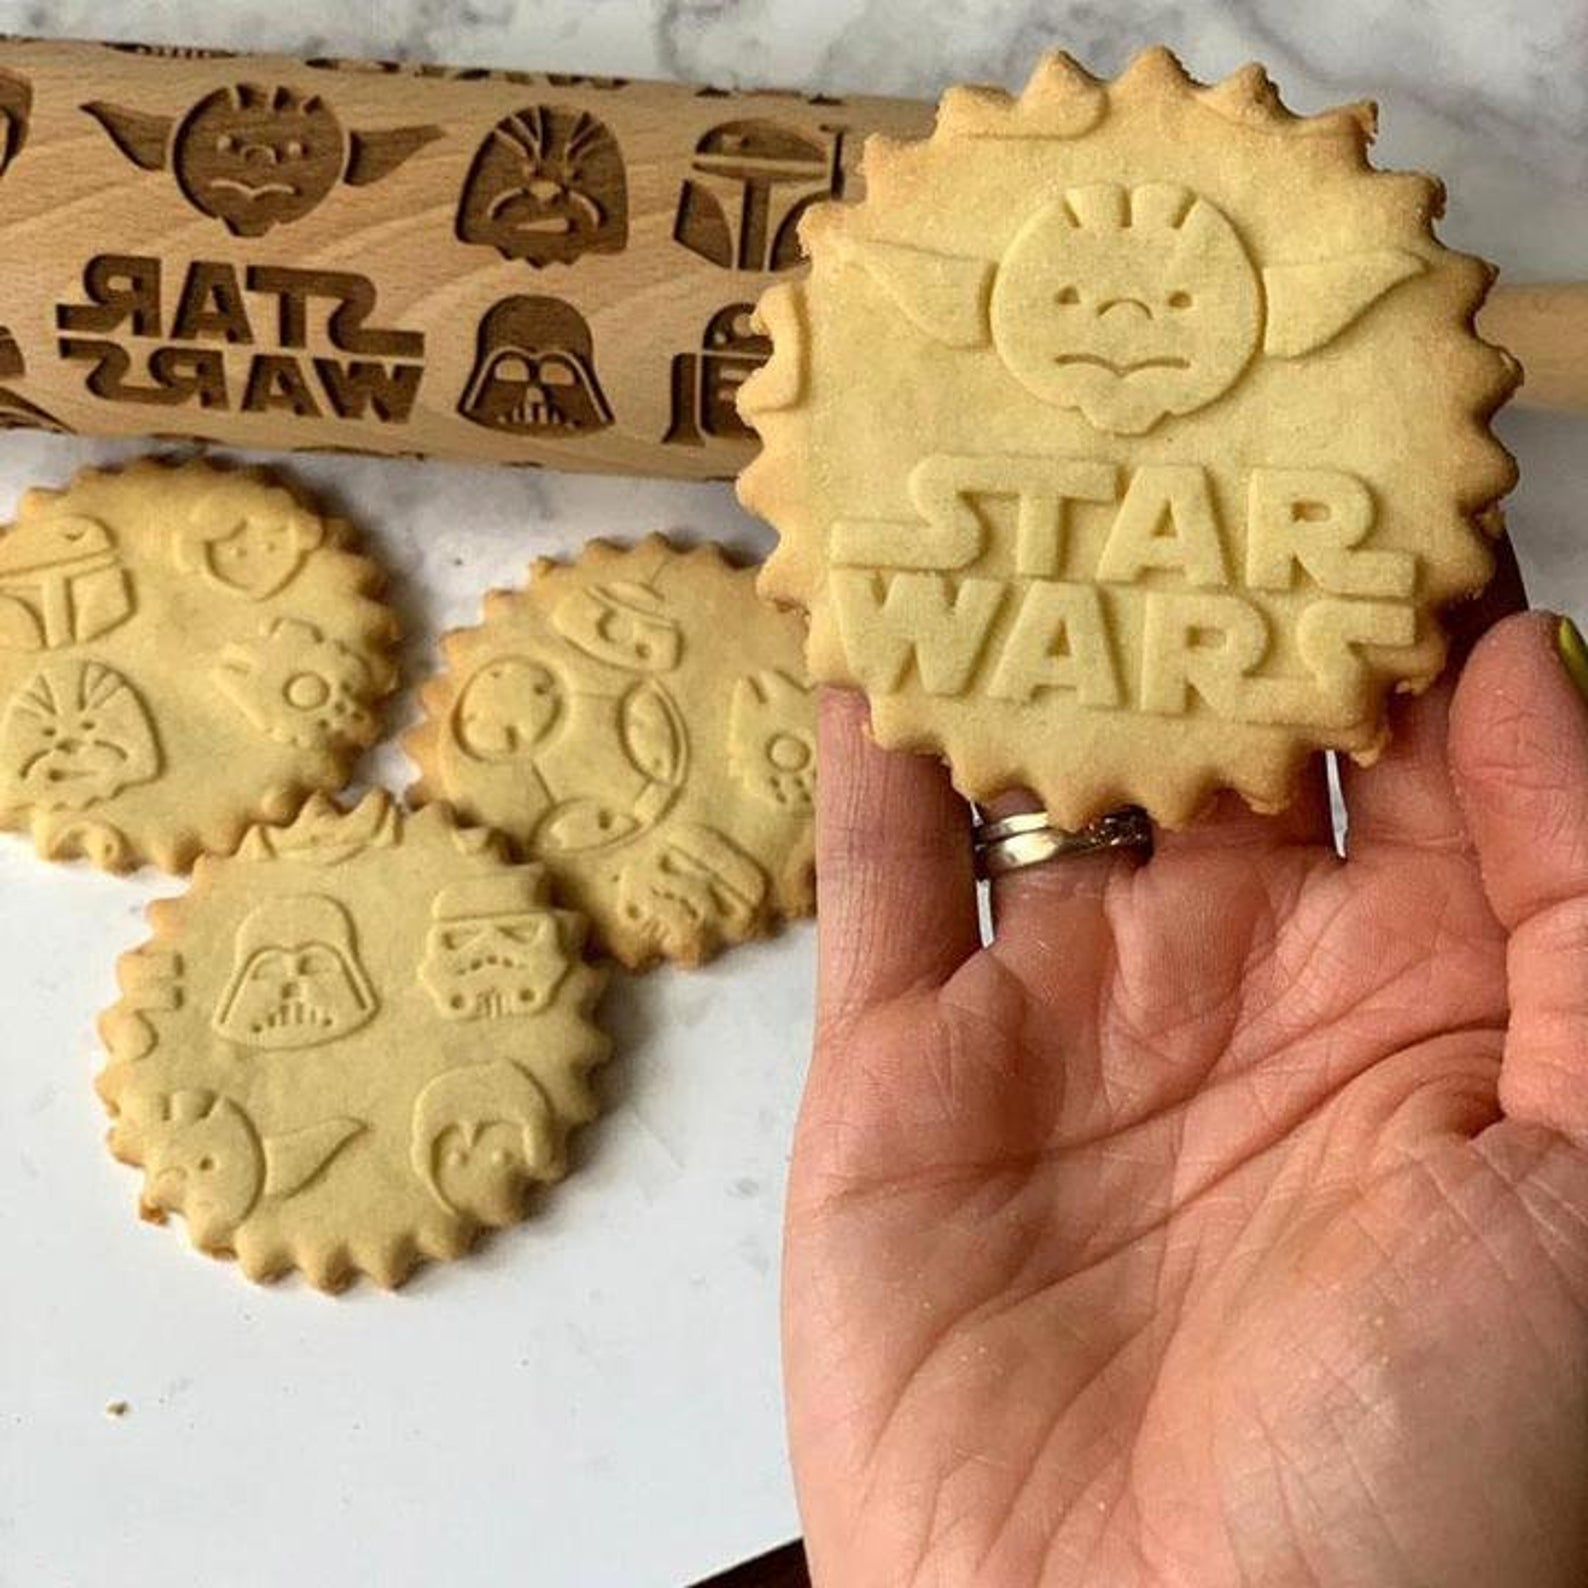 [Image description: a rolling pin engraved with Star Wars symbols and 4 cookies]